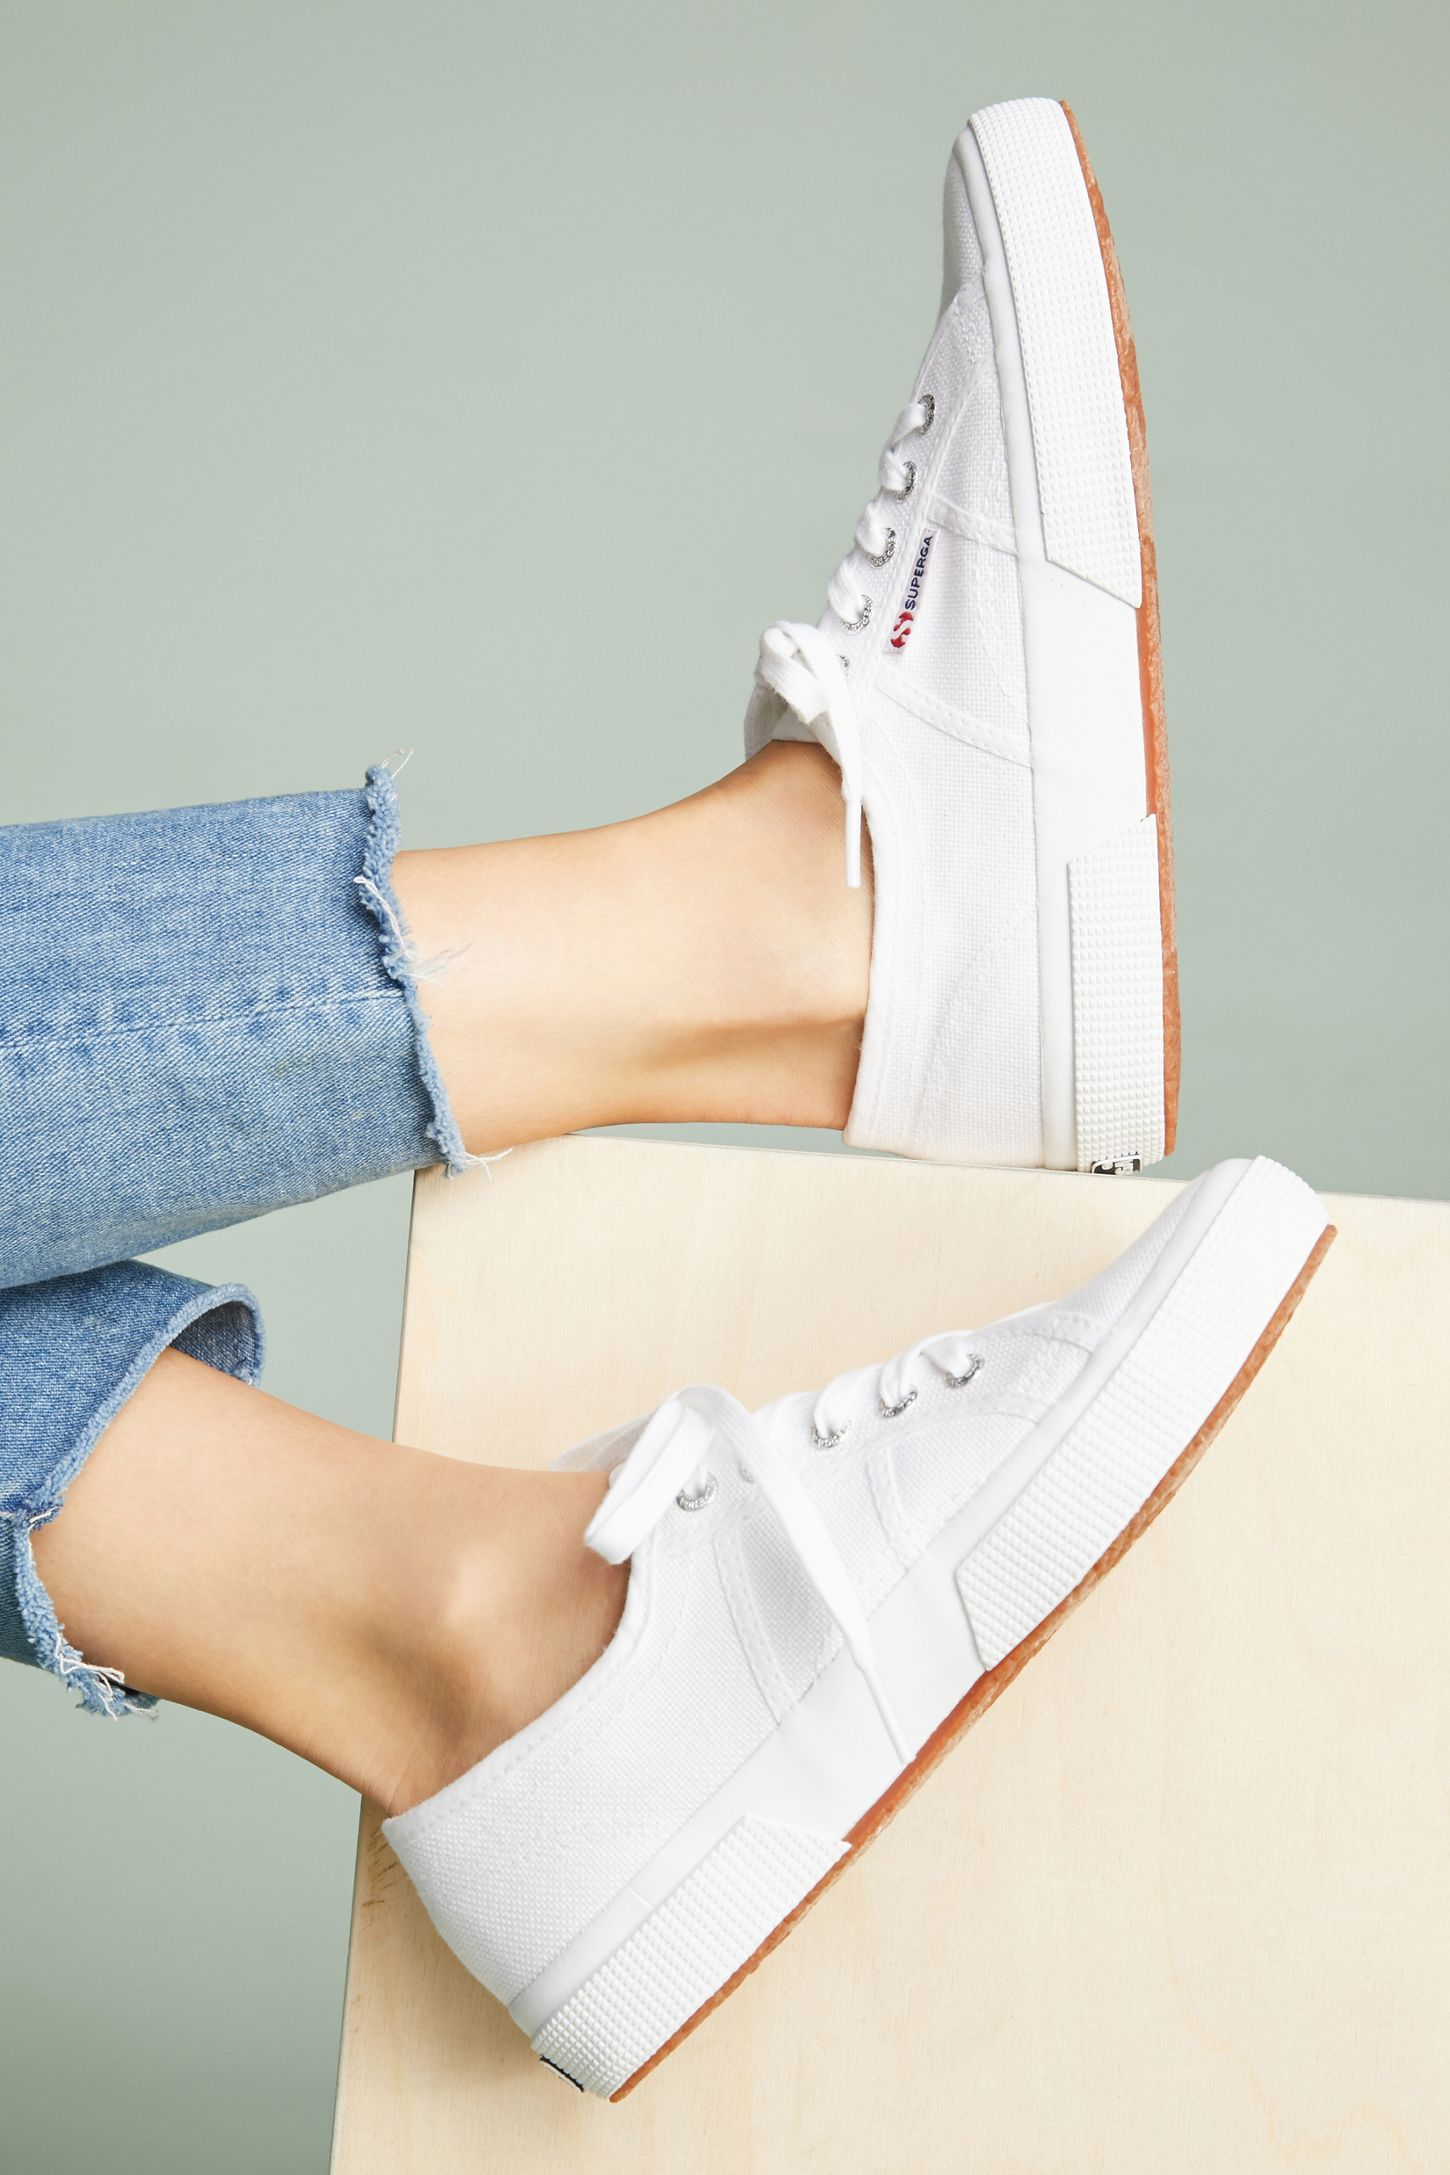 8516fcfb4 Shop the Superga Core Classic Sneakers at Anthropologie today. Read  customer reviews, discover product details and more.